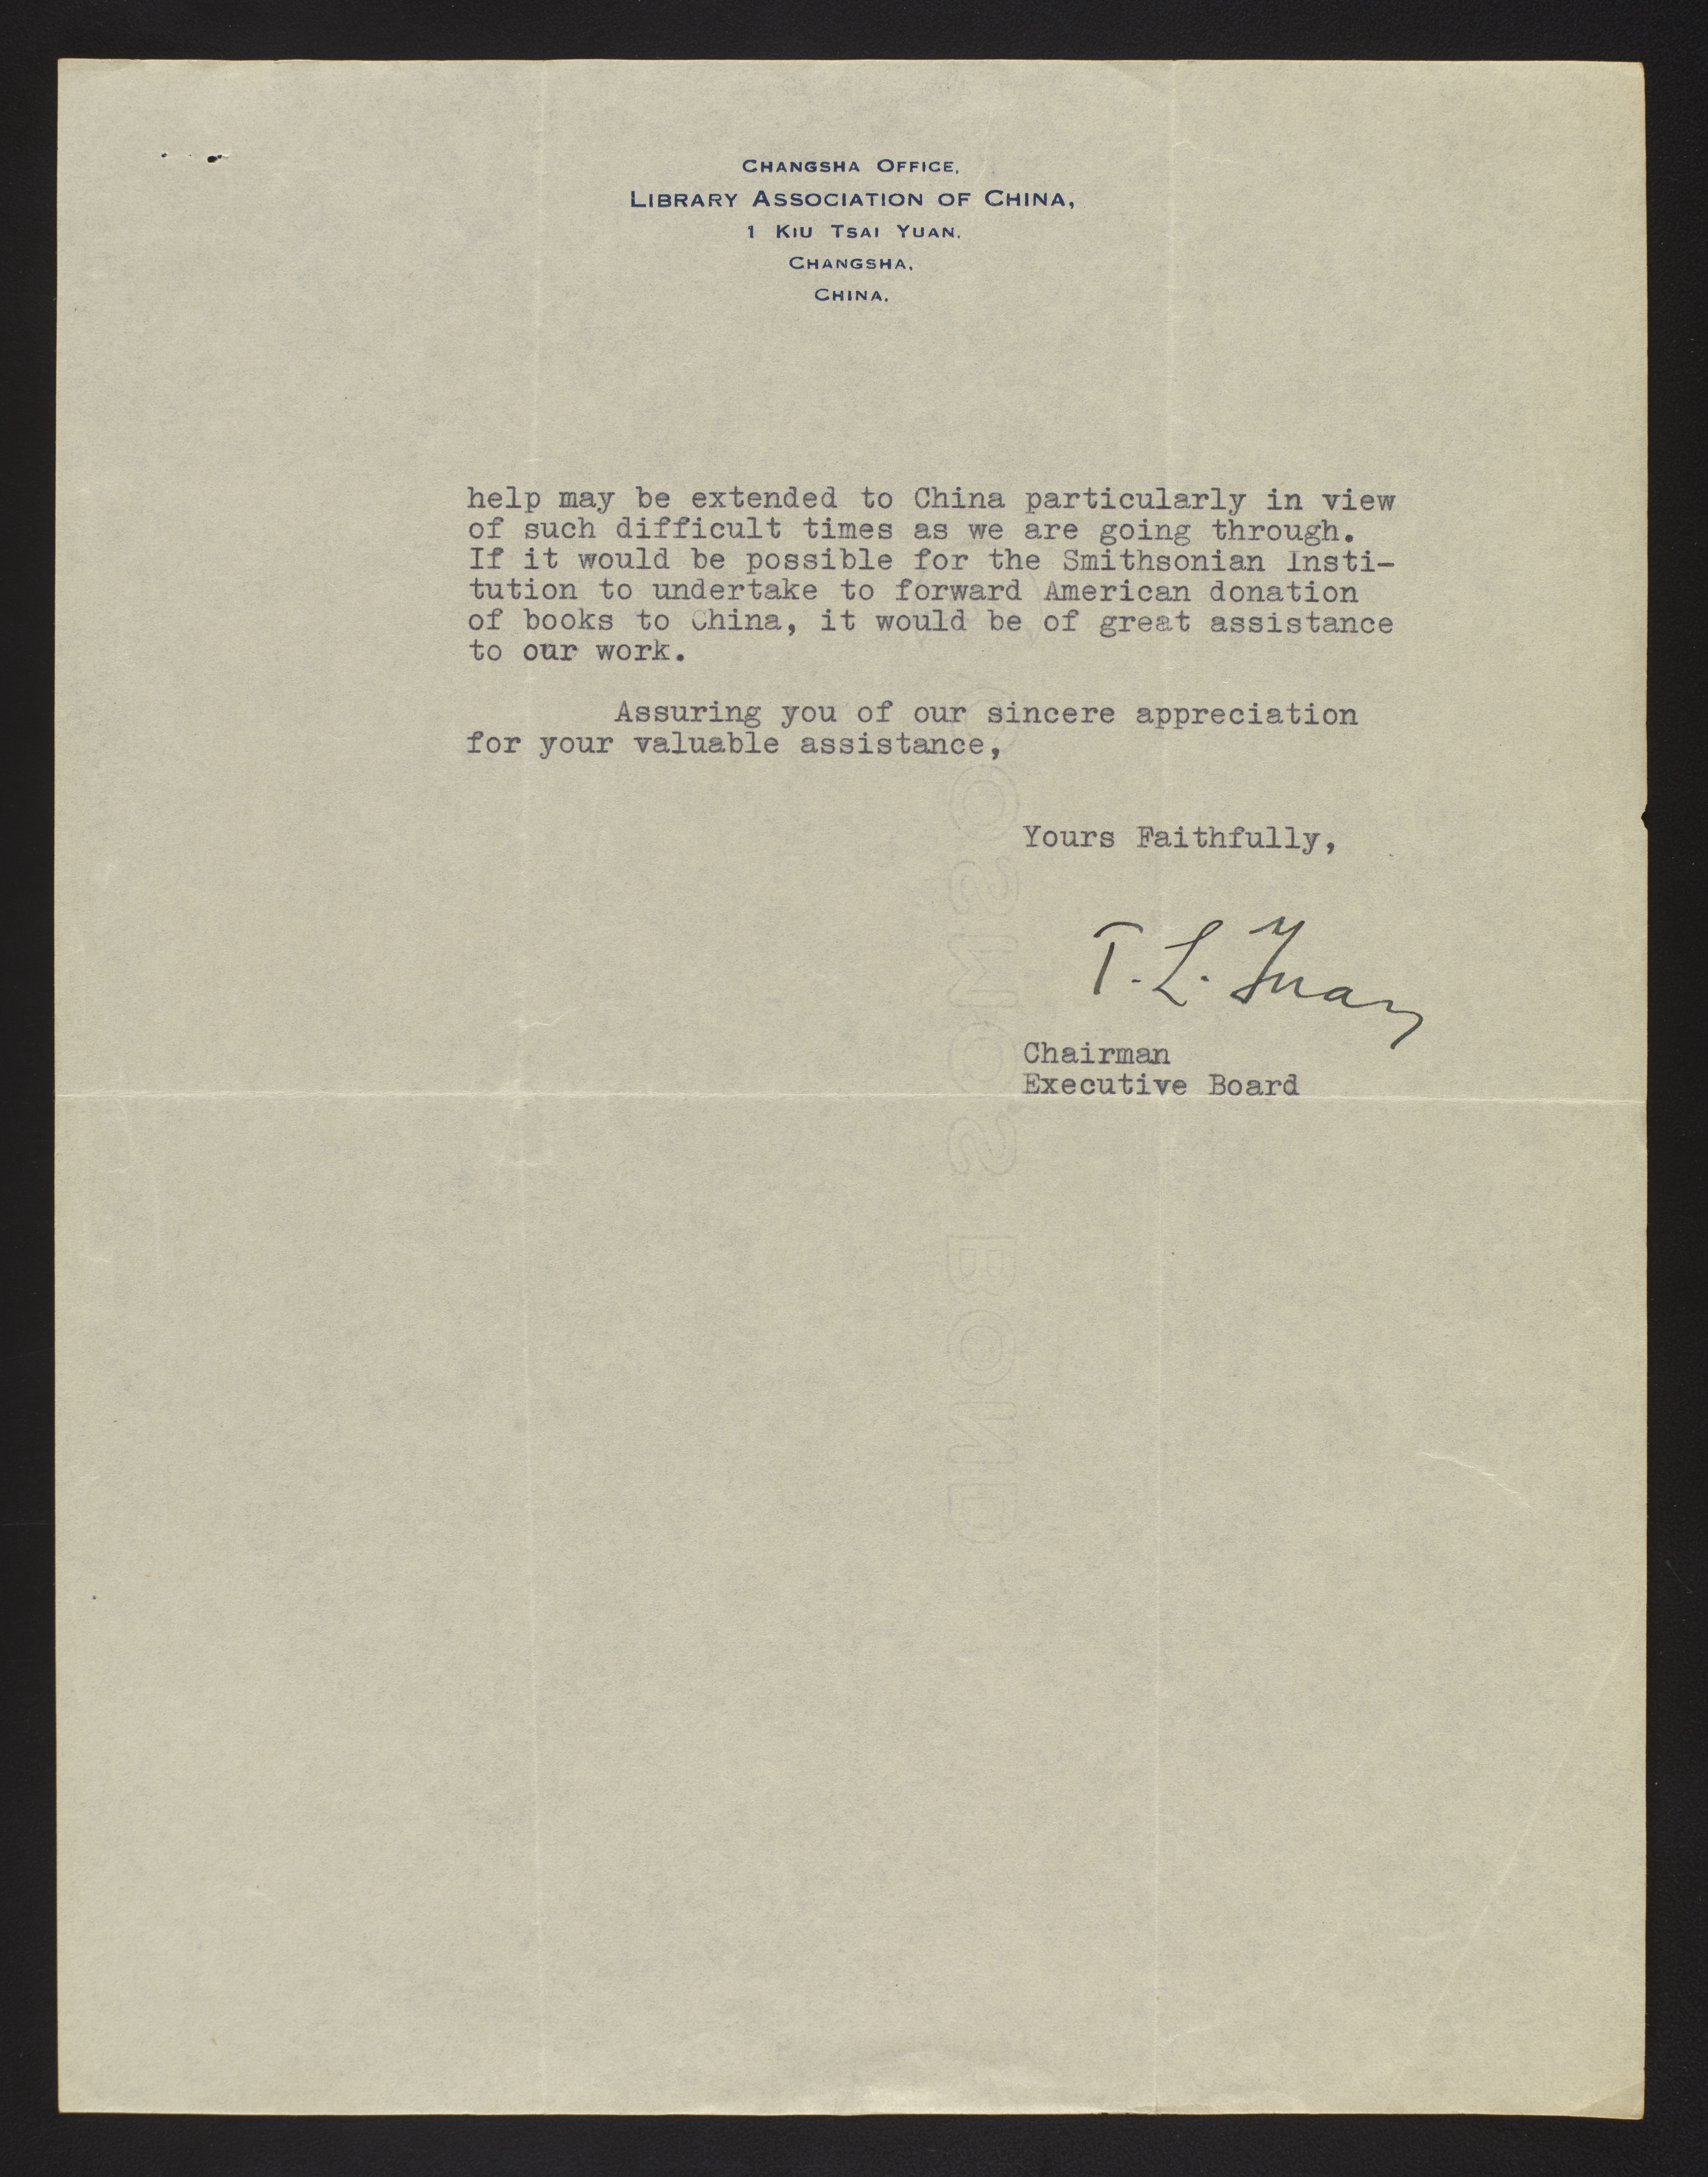 Second page of typewritten letter from T.L. Yuan (Chairman of Executive Board of Library Association